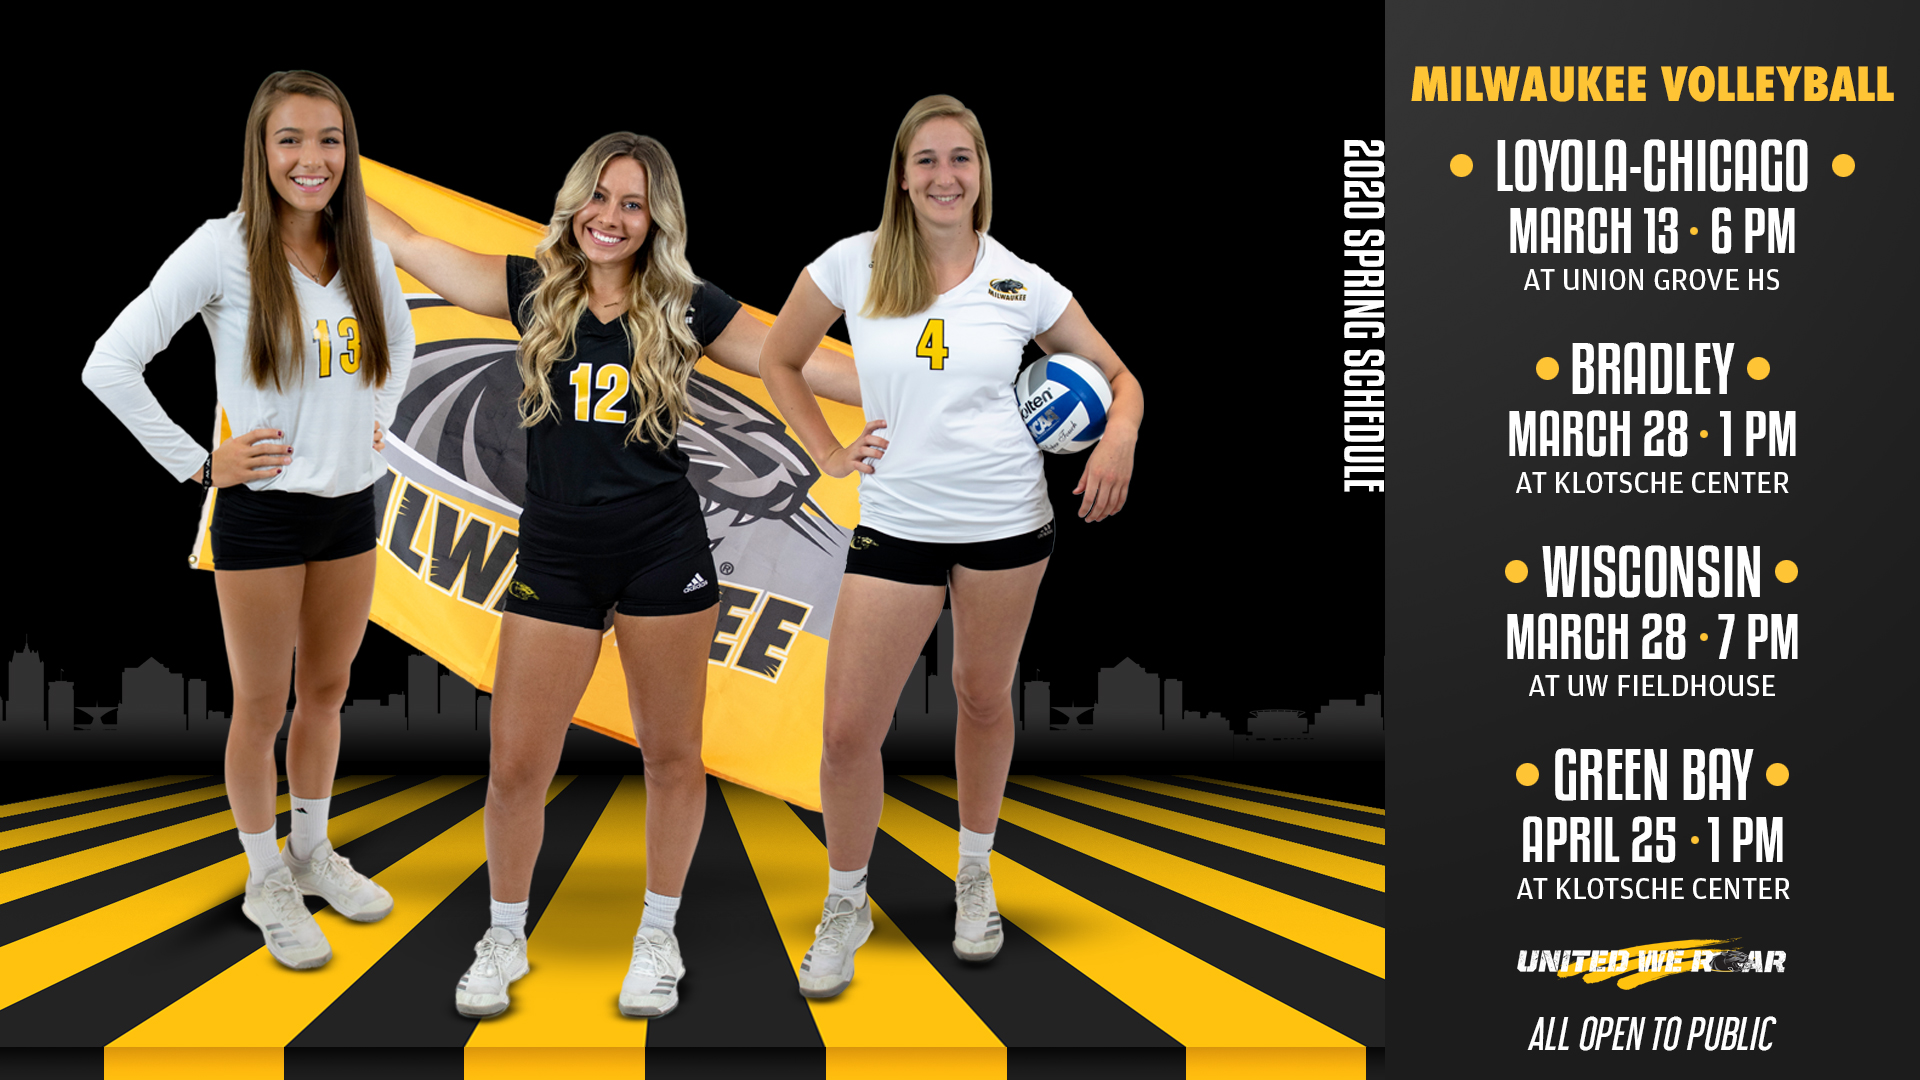 Panthers Gear Up For Spring Season Milwaukee Athletics